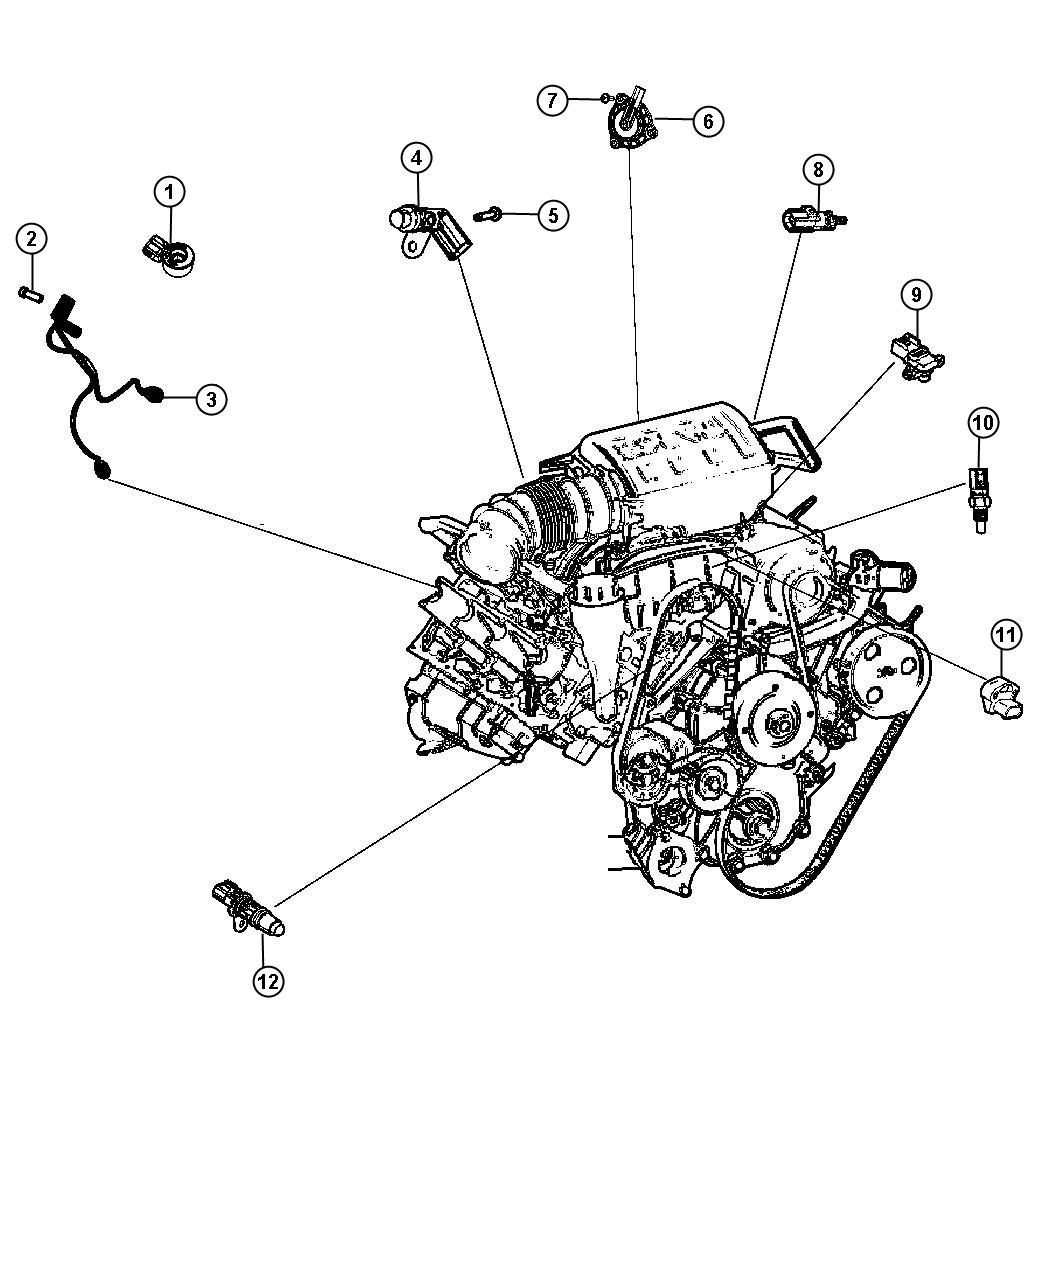 Engine Firing Order Diagram besides P 0900c15280055ac6 additionally What Is The Firing Order Of A Chevrolet 350 Smallblock Engine also Chevy Hei Distributor Wiring Diagram as well 5 7 Vortec Firing Order Diagram. on chevy 350 hei firing order diagram